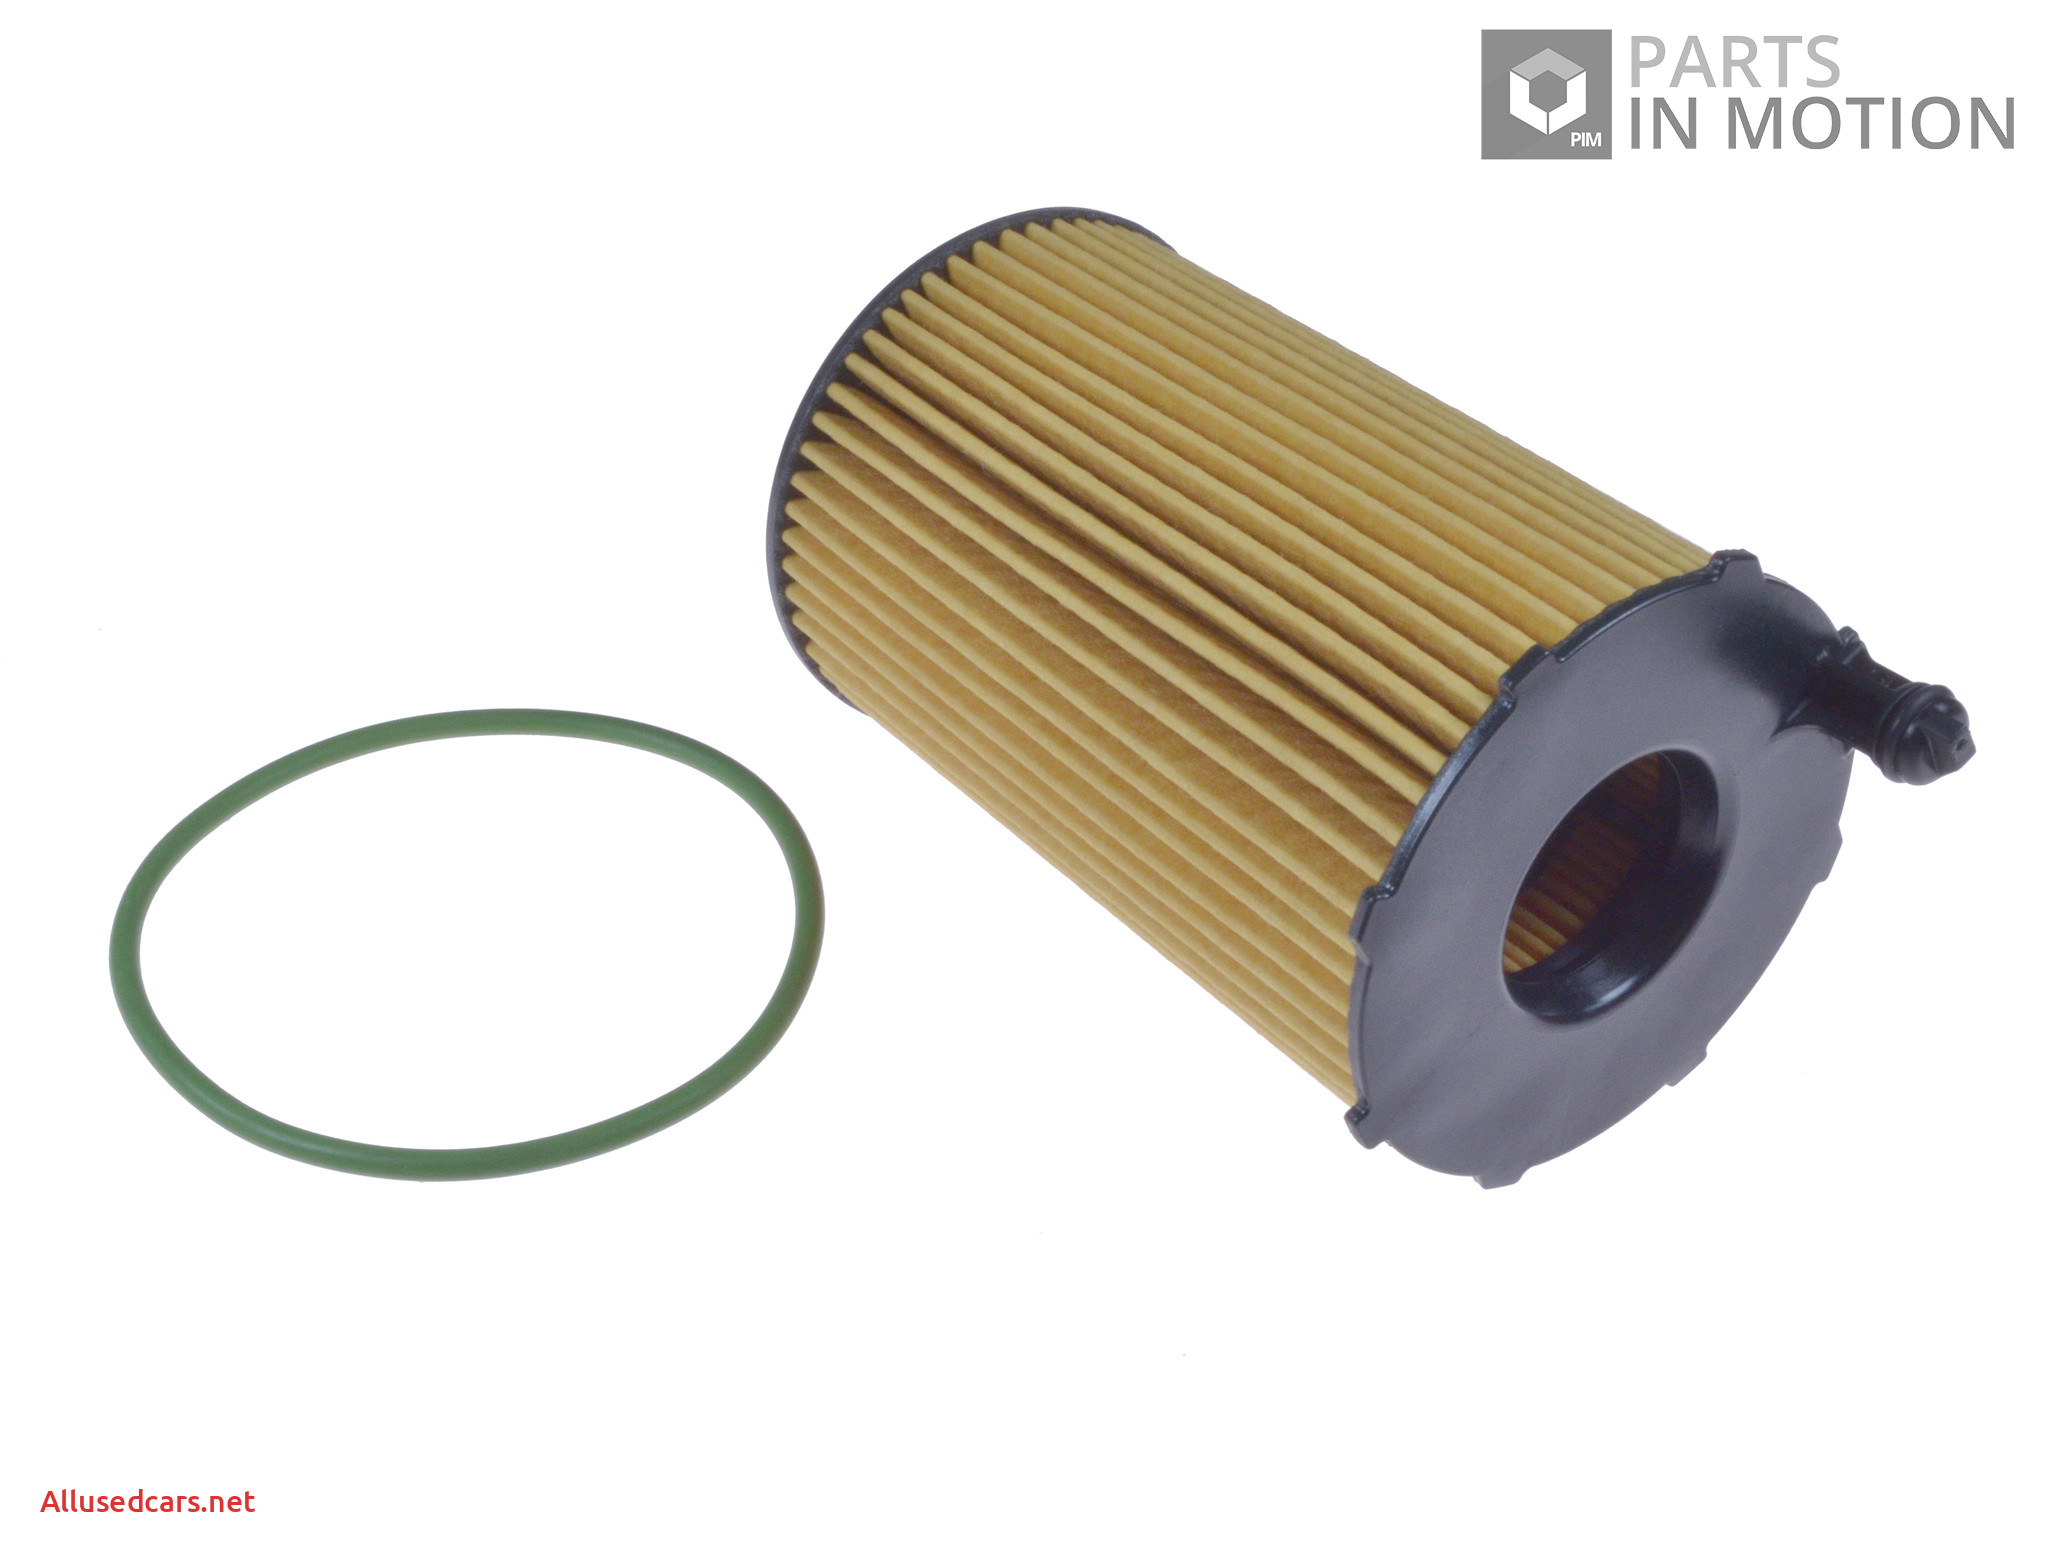 Audi A8 2012 Inspirational Details About Audi A8 4h 3 0d Oil Filter 10 to 18 Adl B D Quality